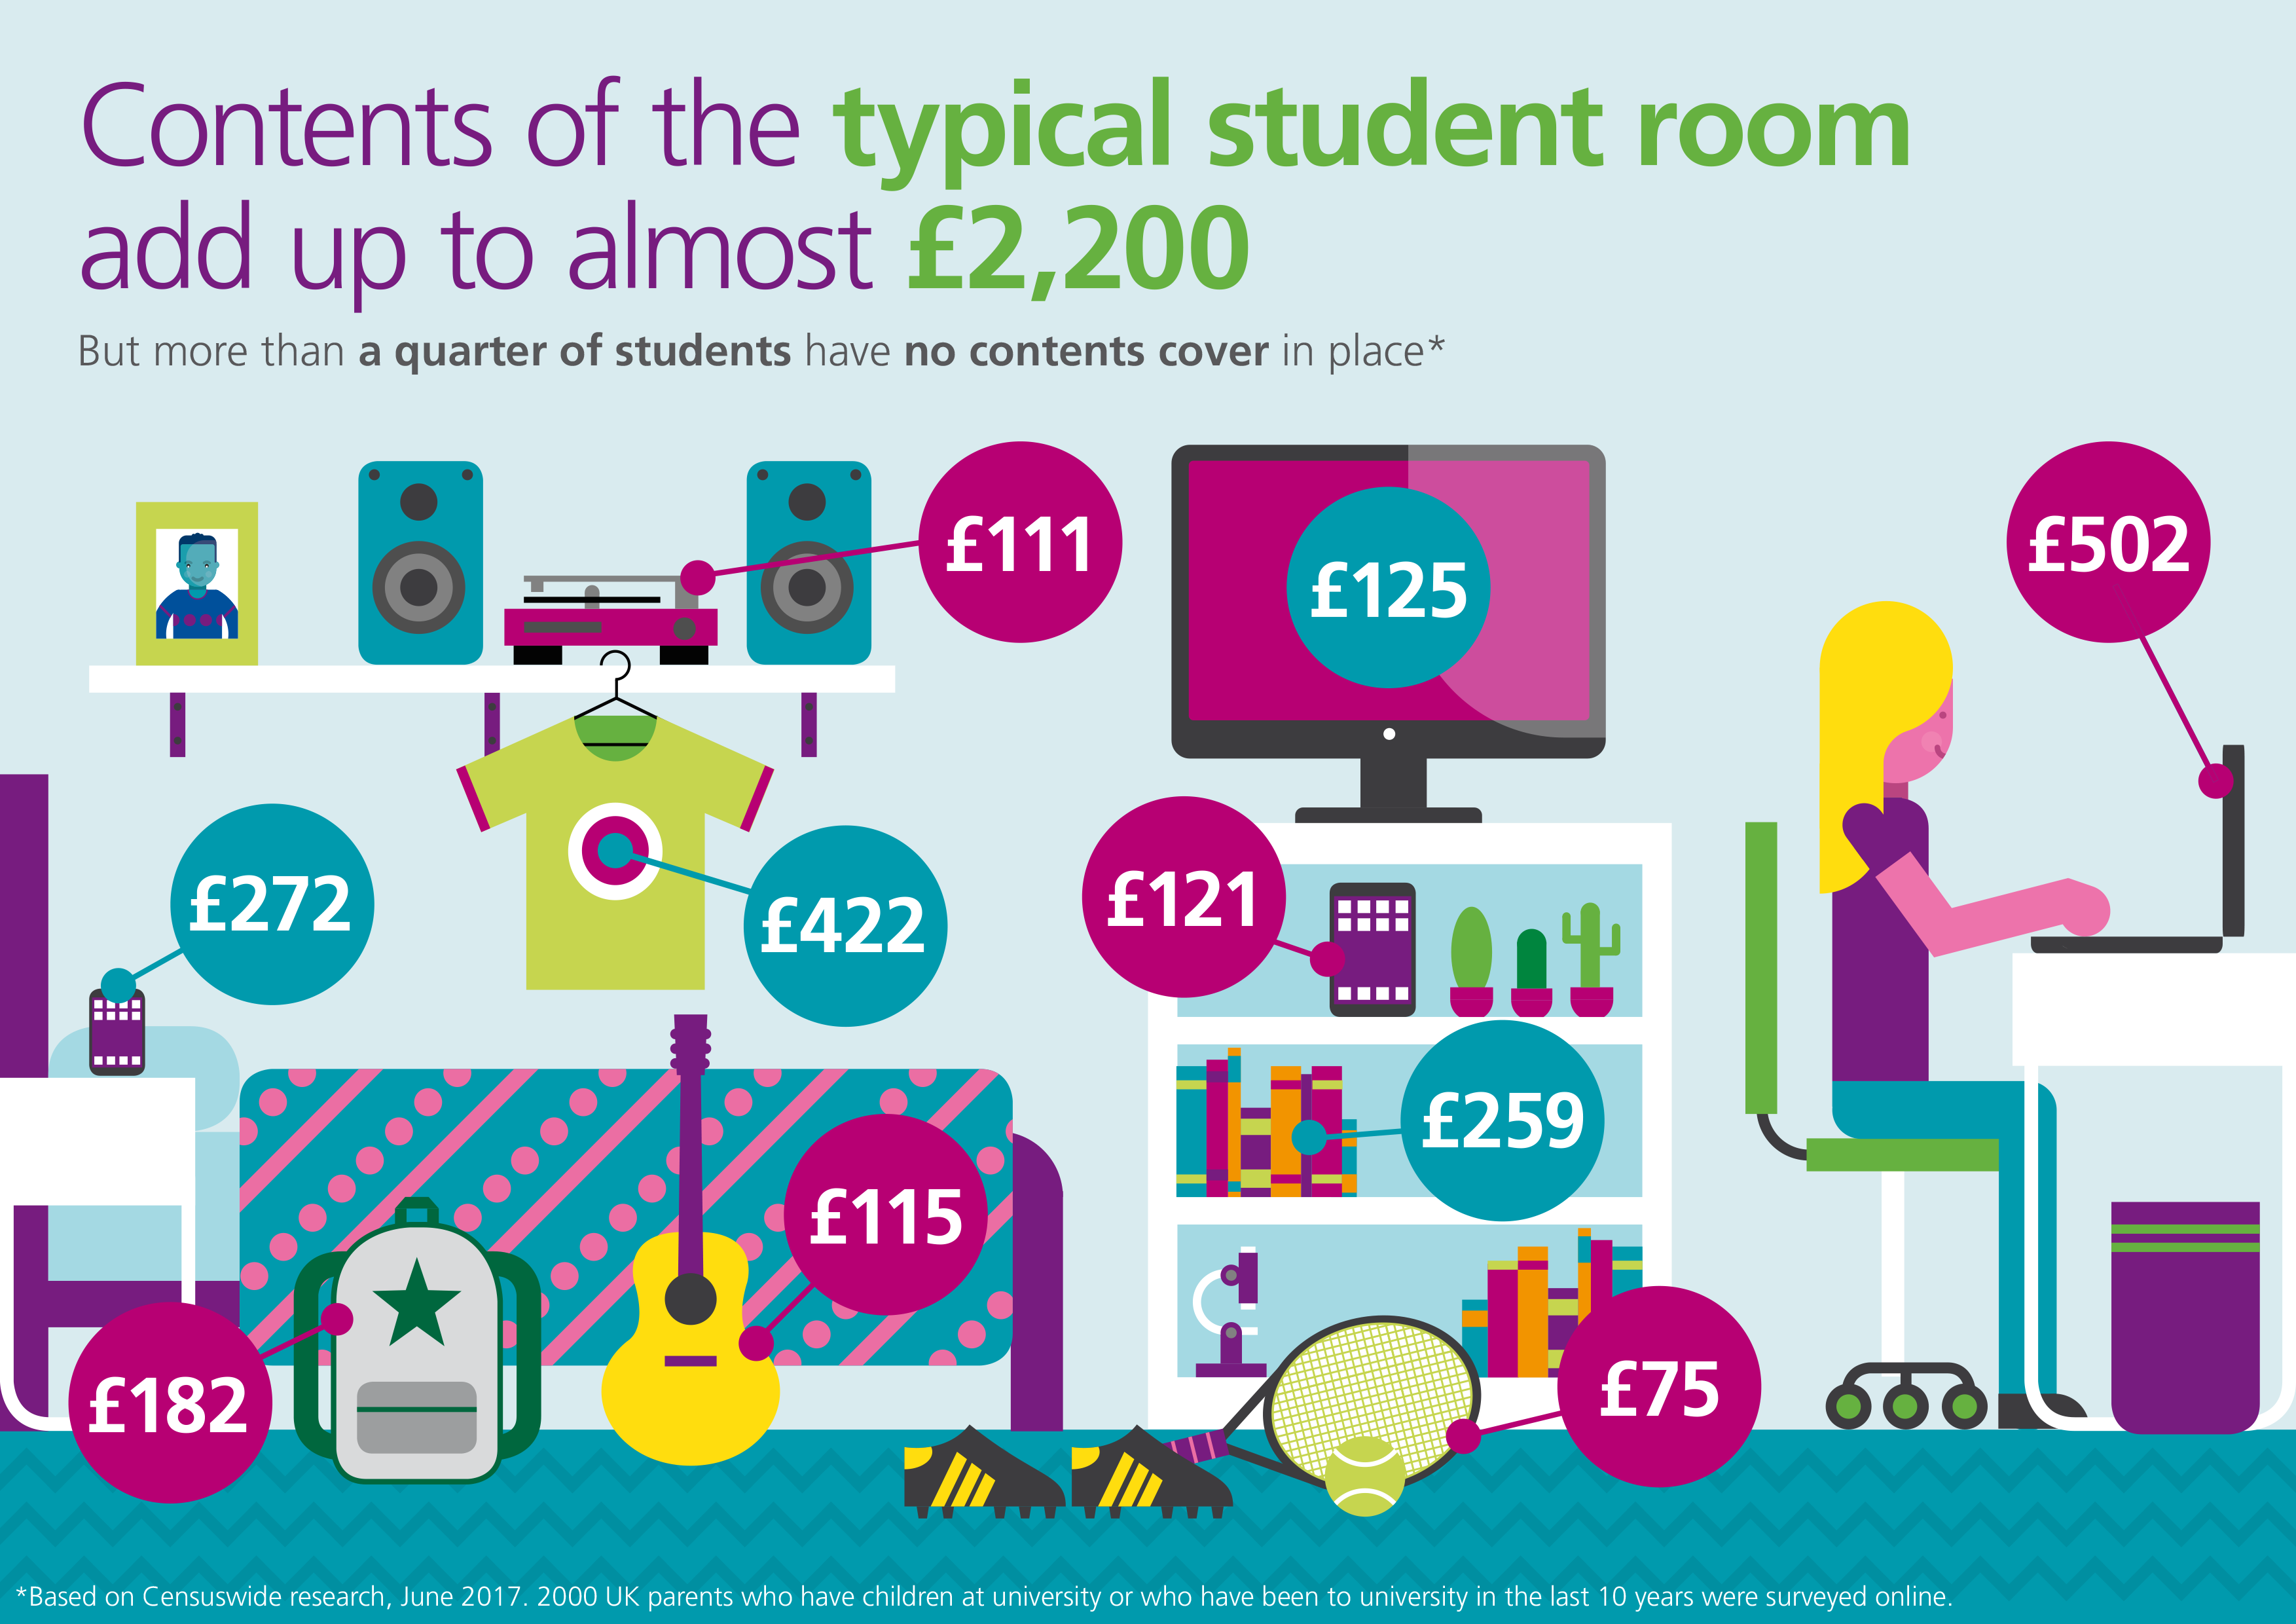 Value of student room contents